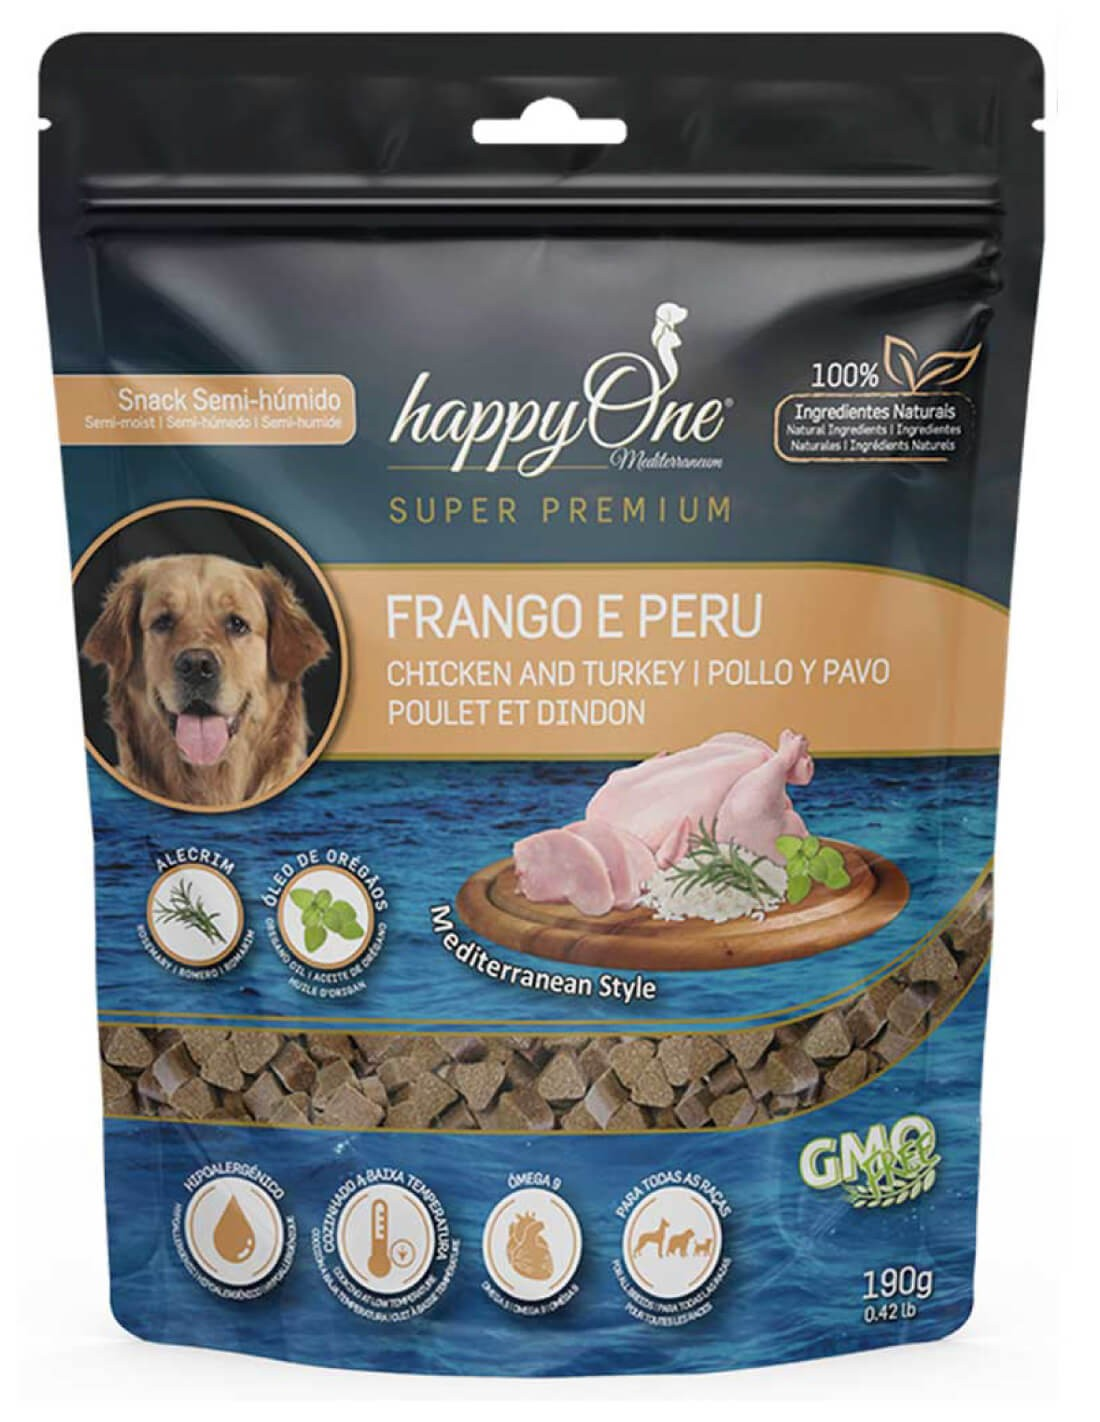 HAPPY ONE Pollo y Pavo Snack Semi-húmedo para perros